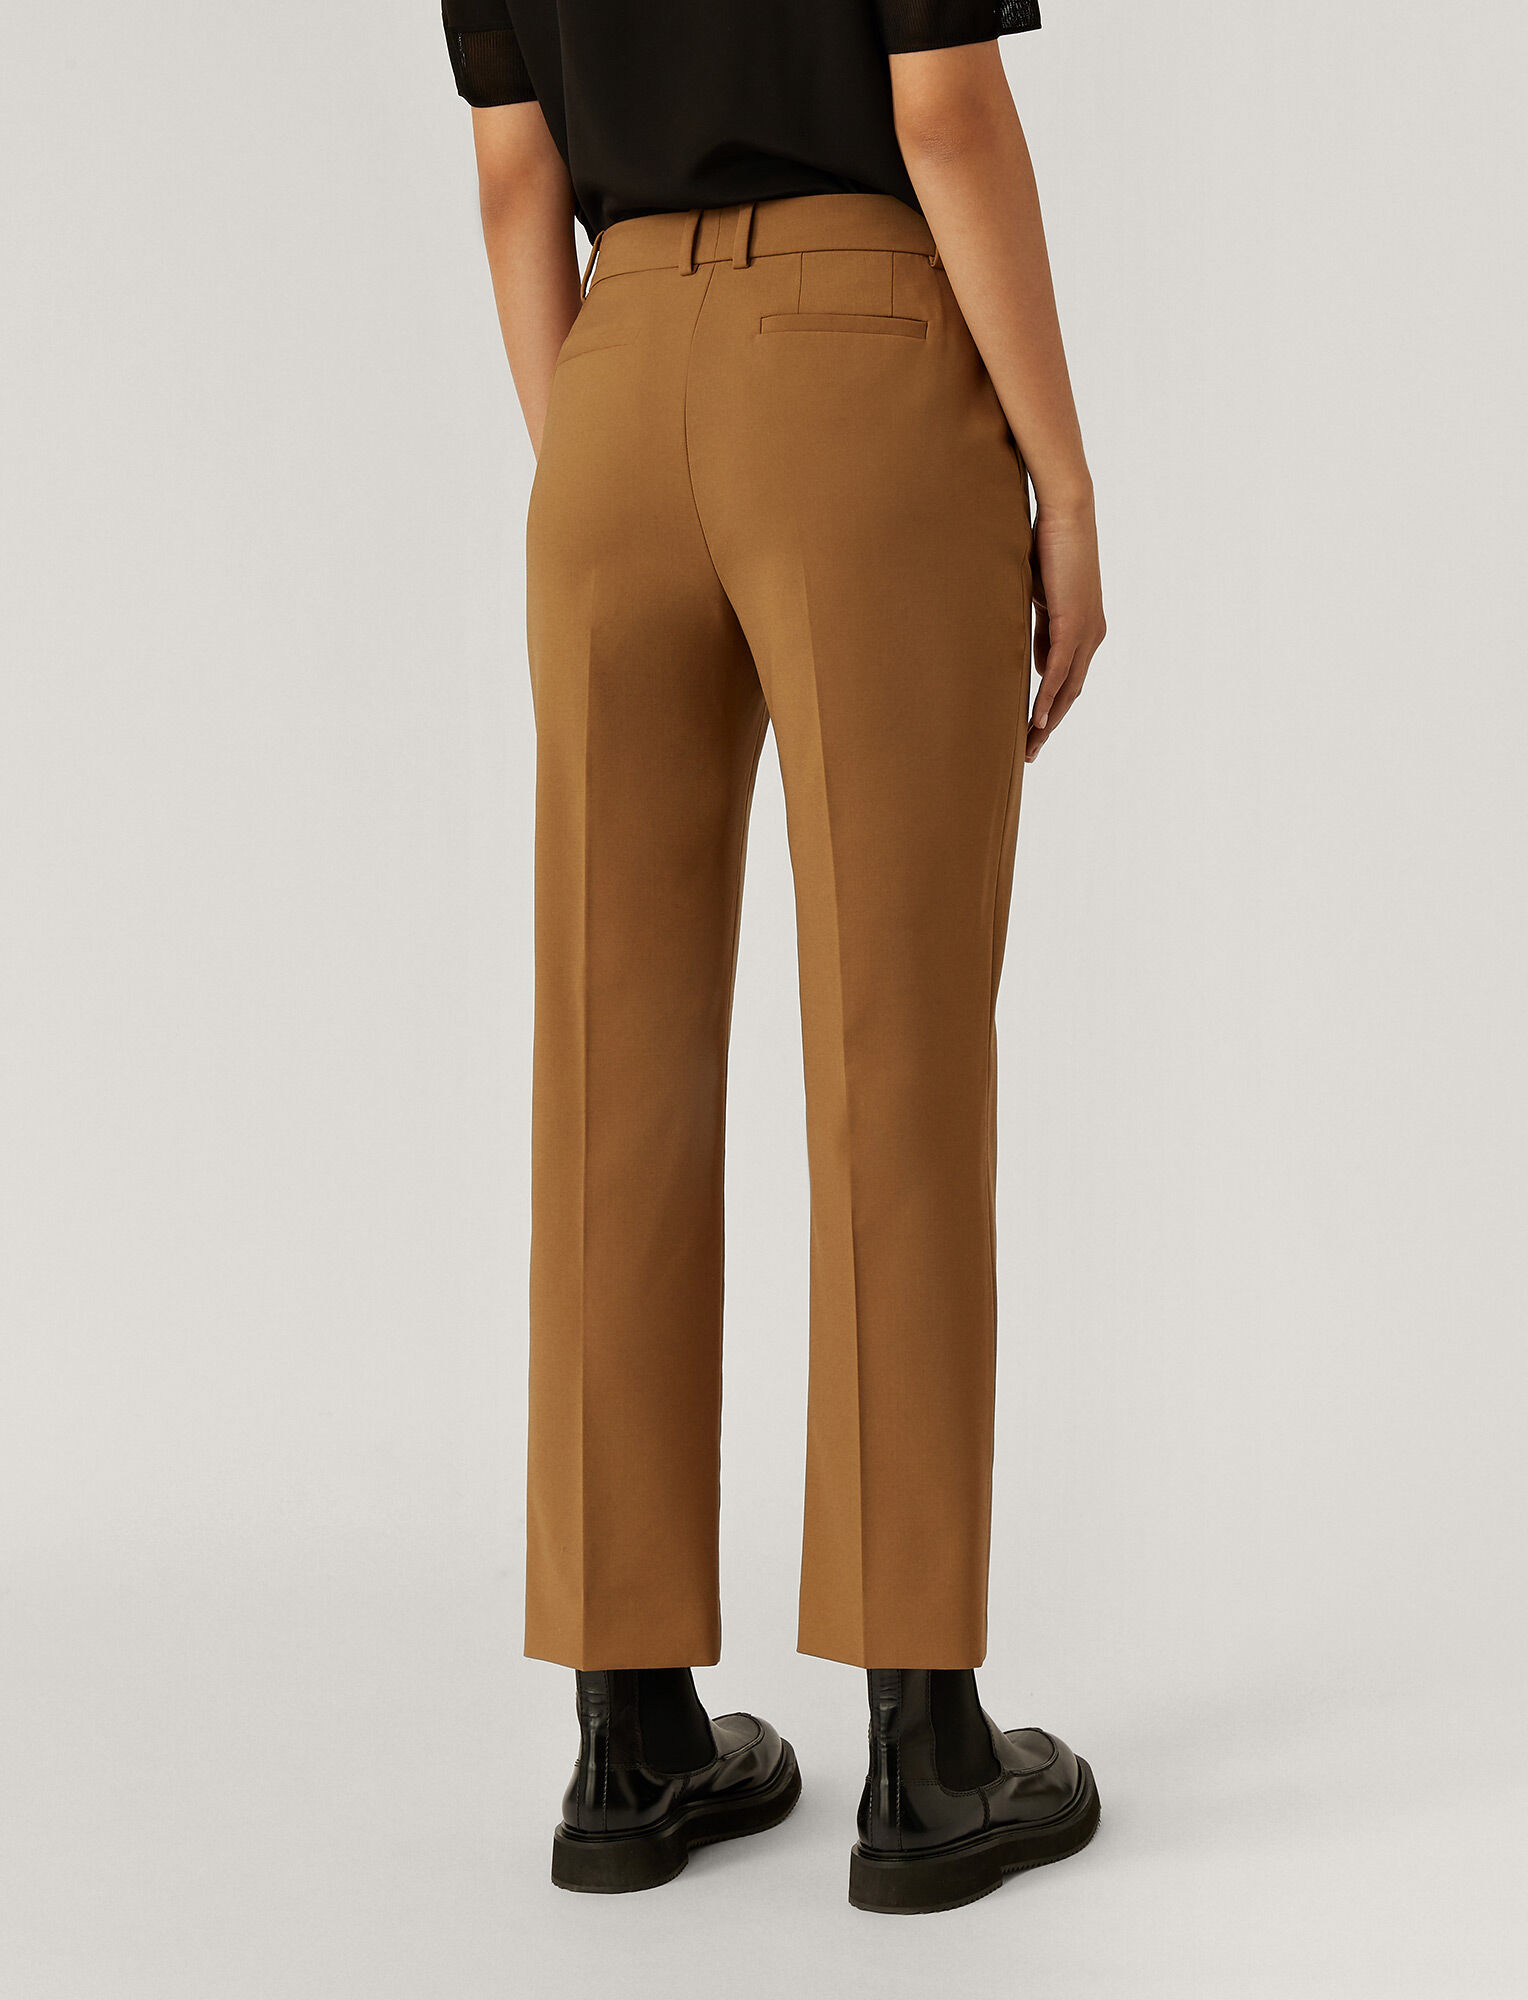 Joseph, Coleman Light Wool Trousers, in Saddle